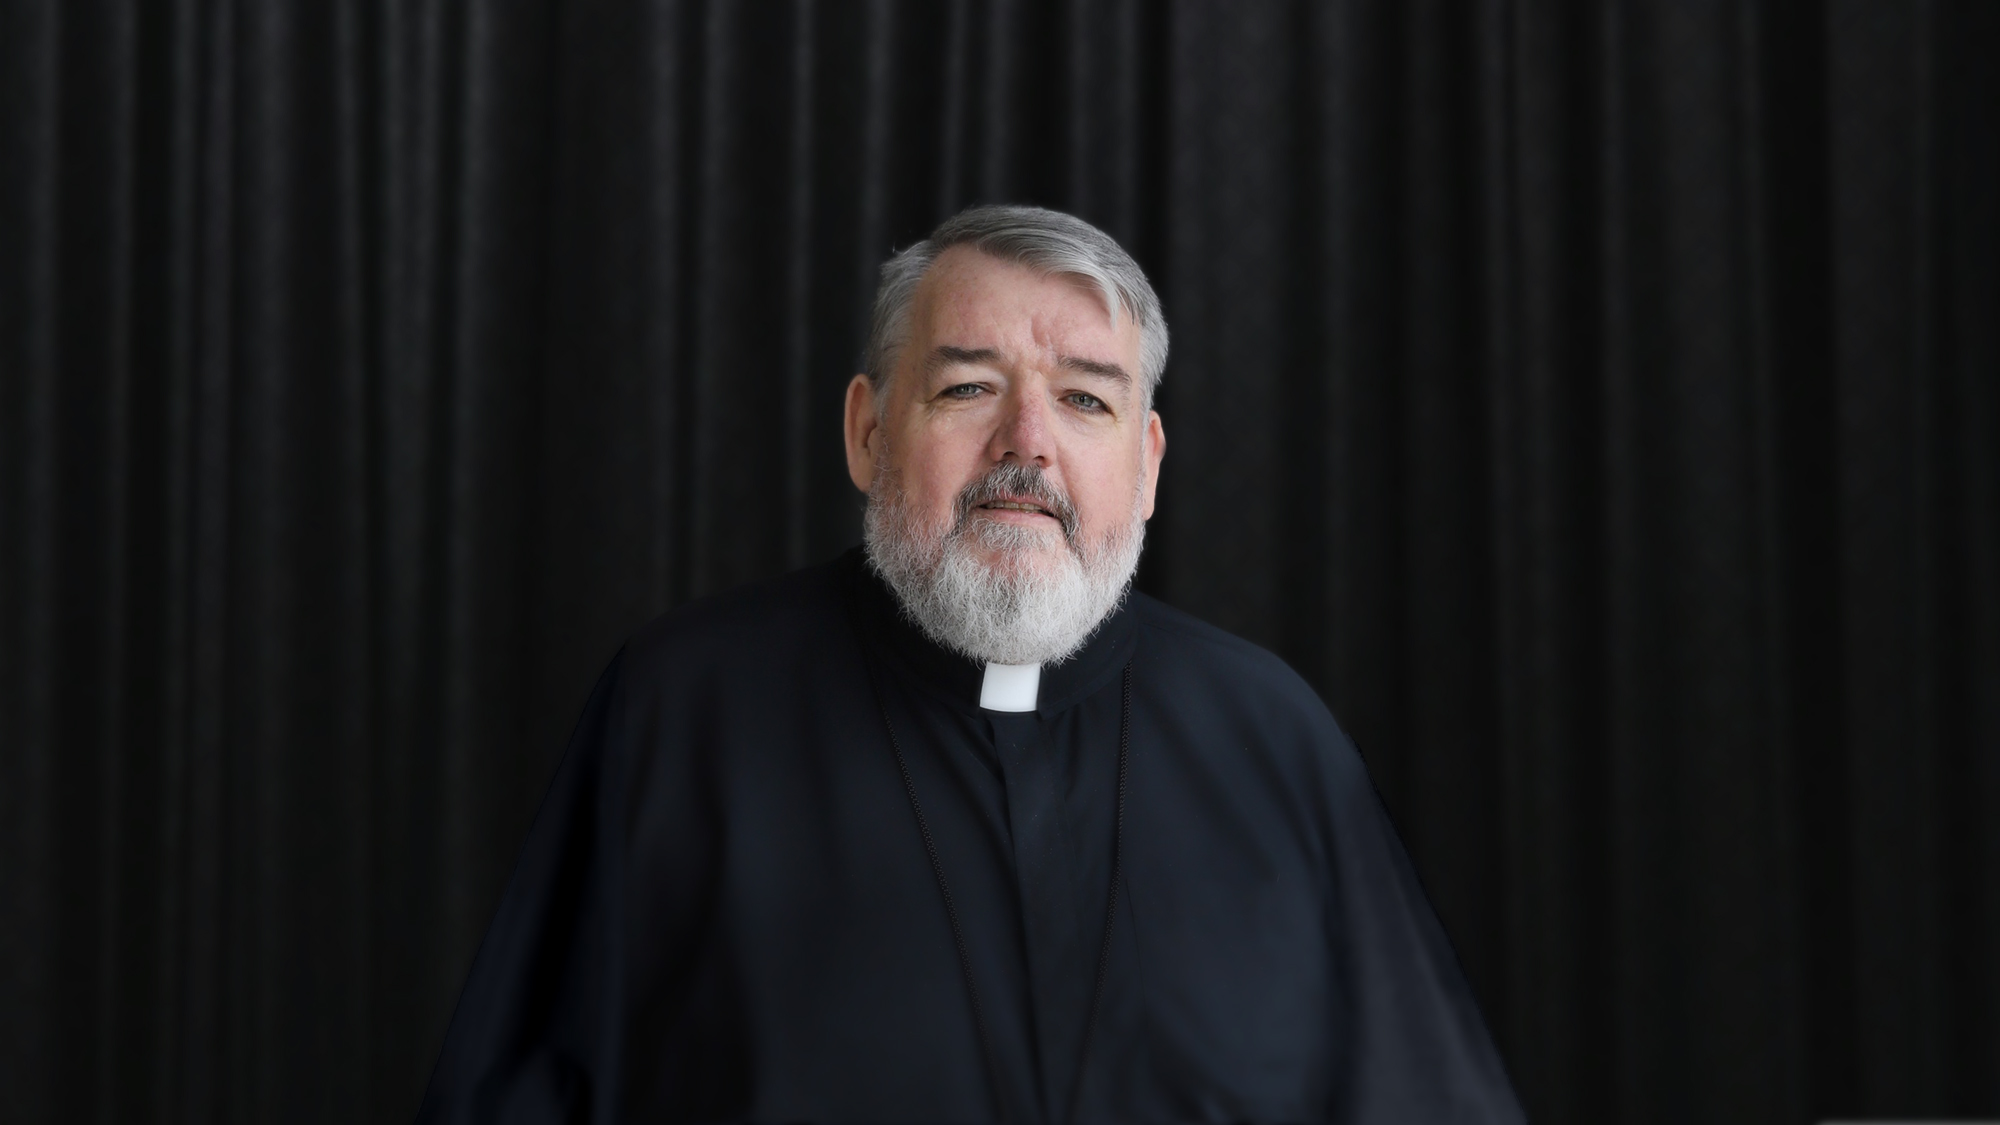 The Oratory welcomes a new rector, Father Michael DeLaney, CSC